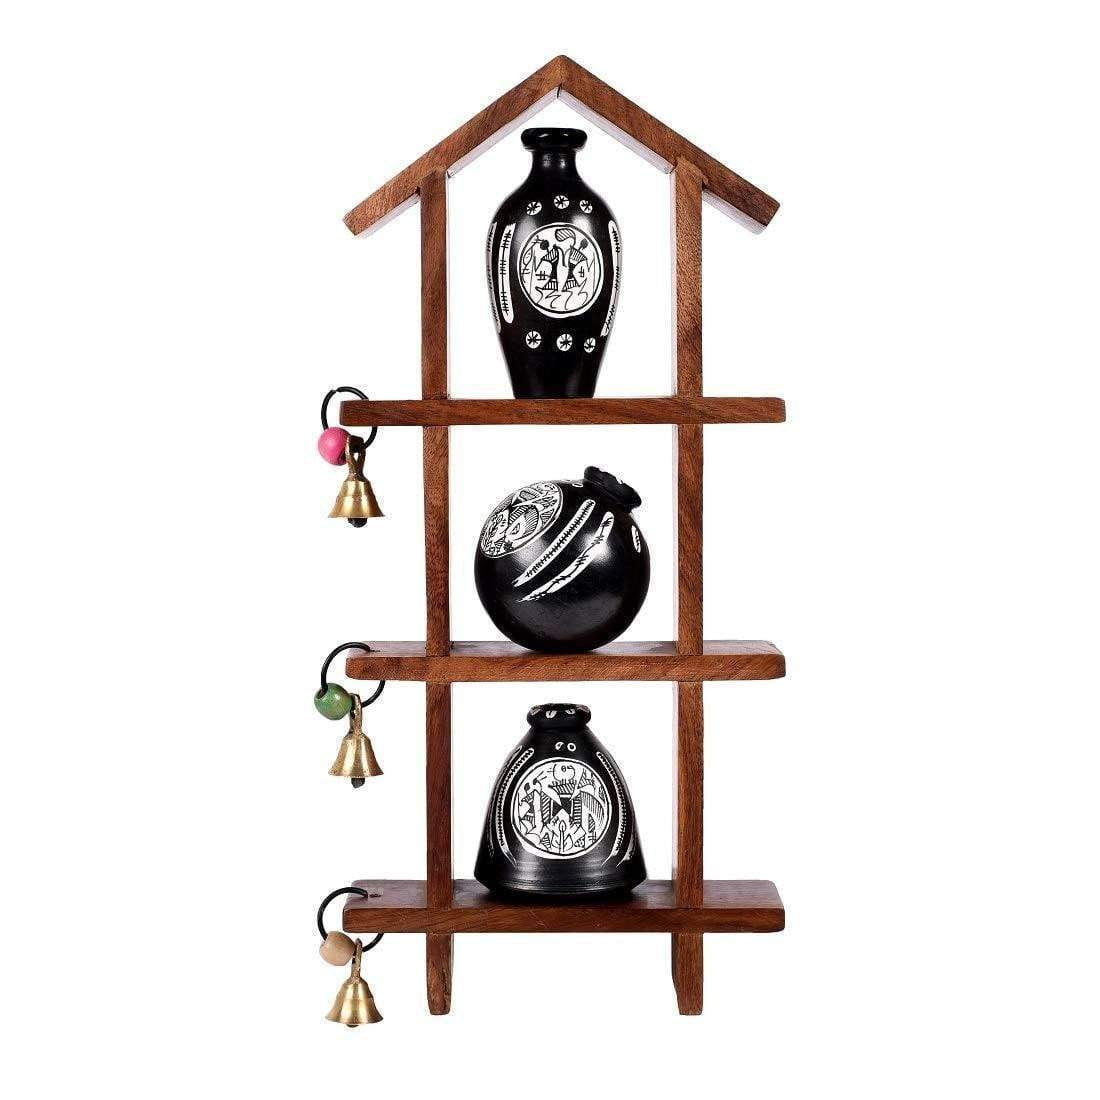 Warli Art Black And White Wooden Wall Shelf With Decorative Earthen Vases